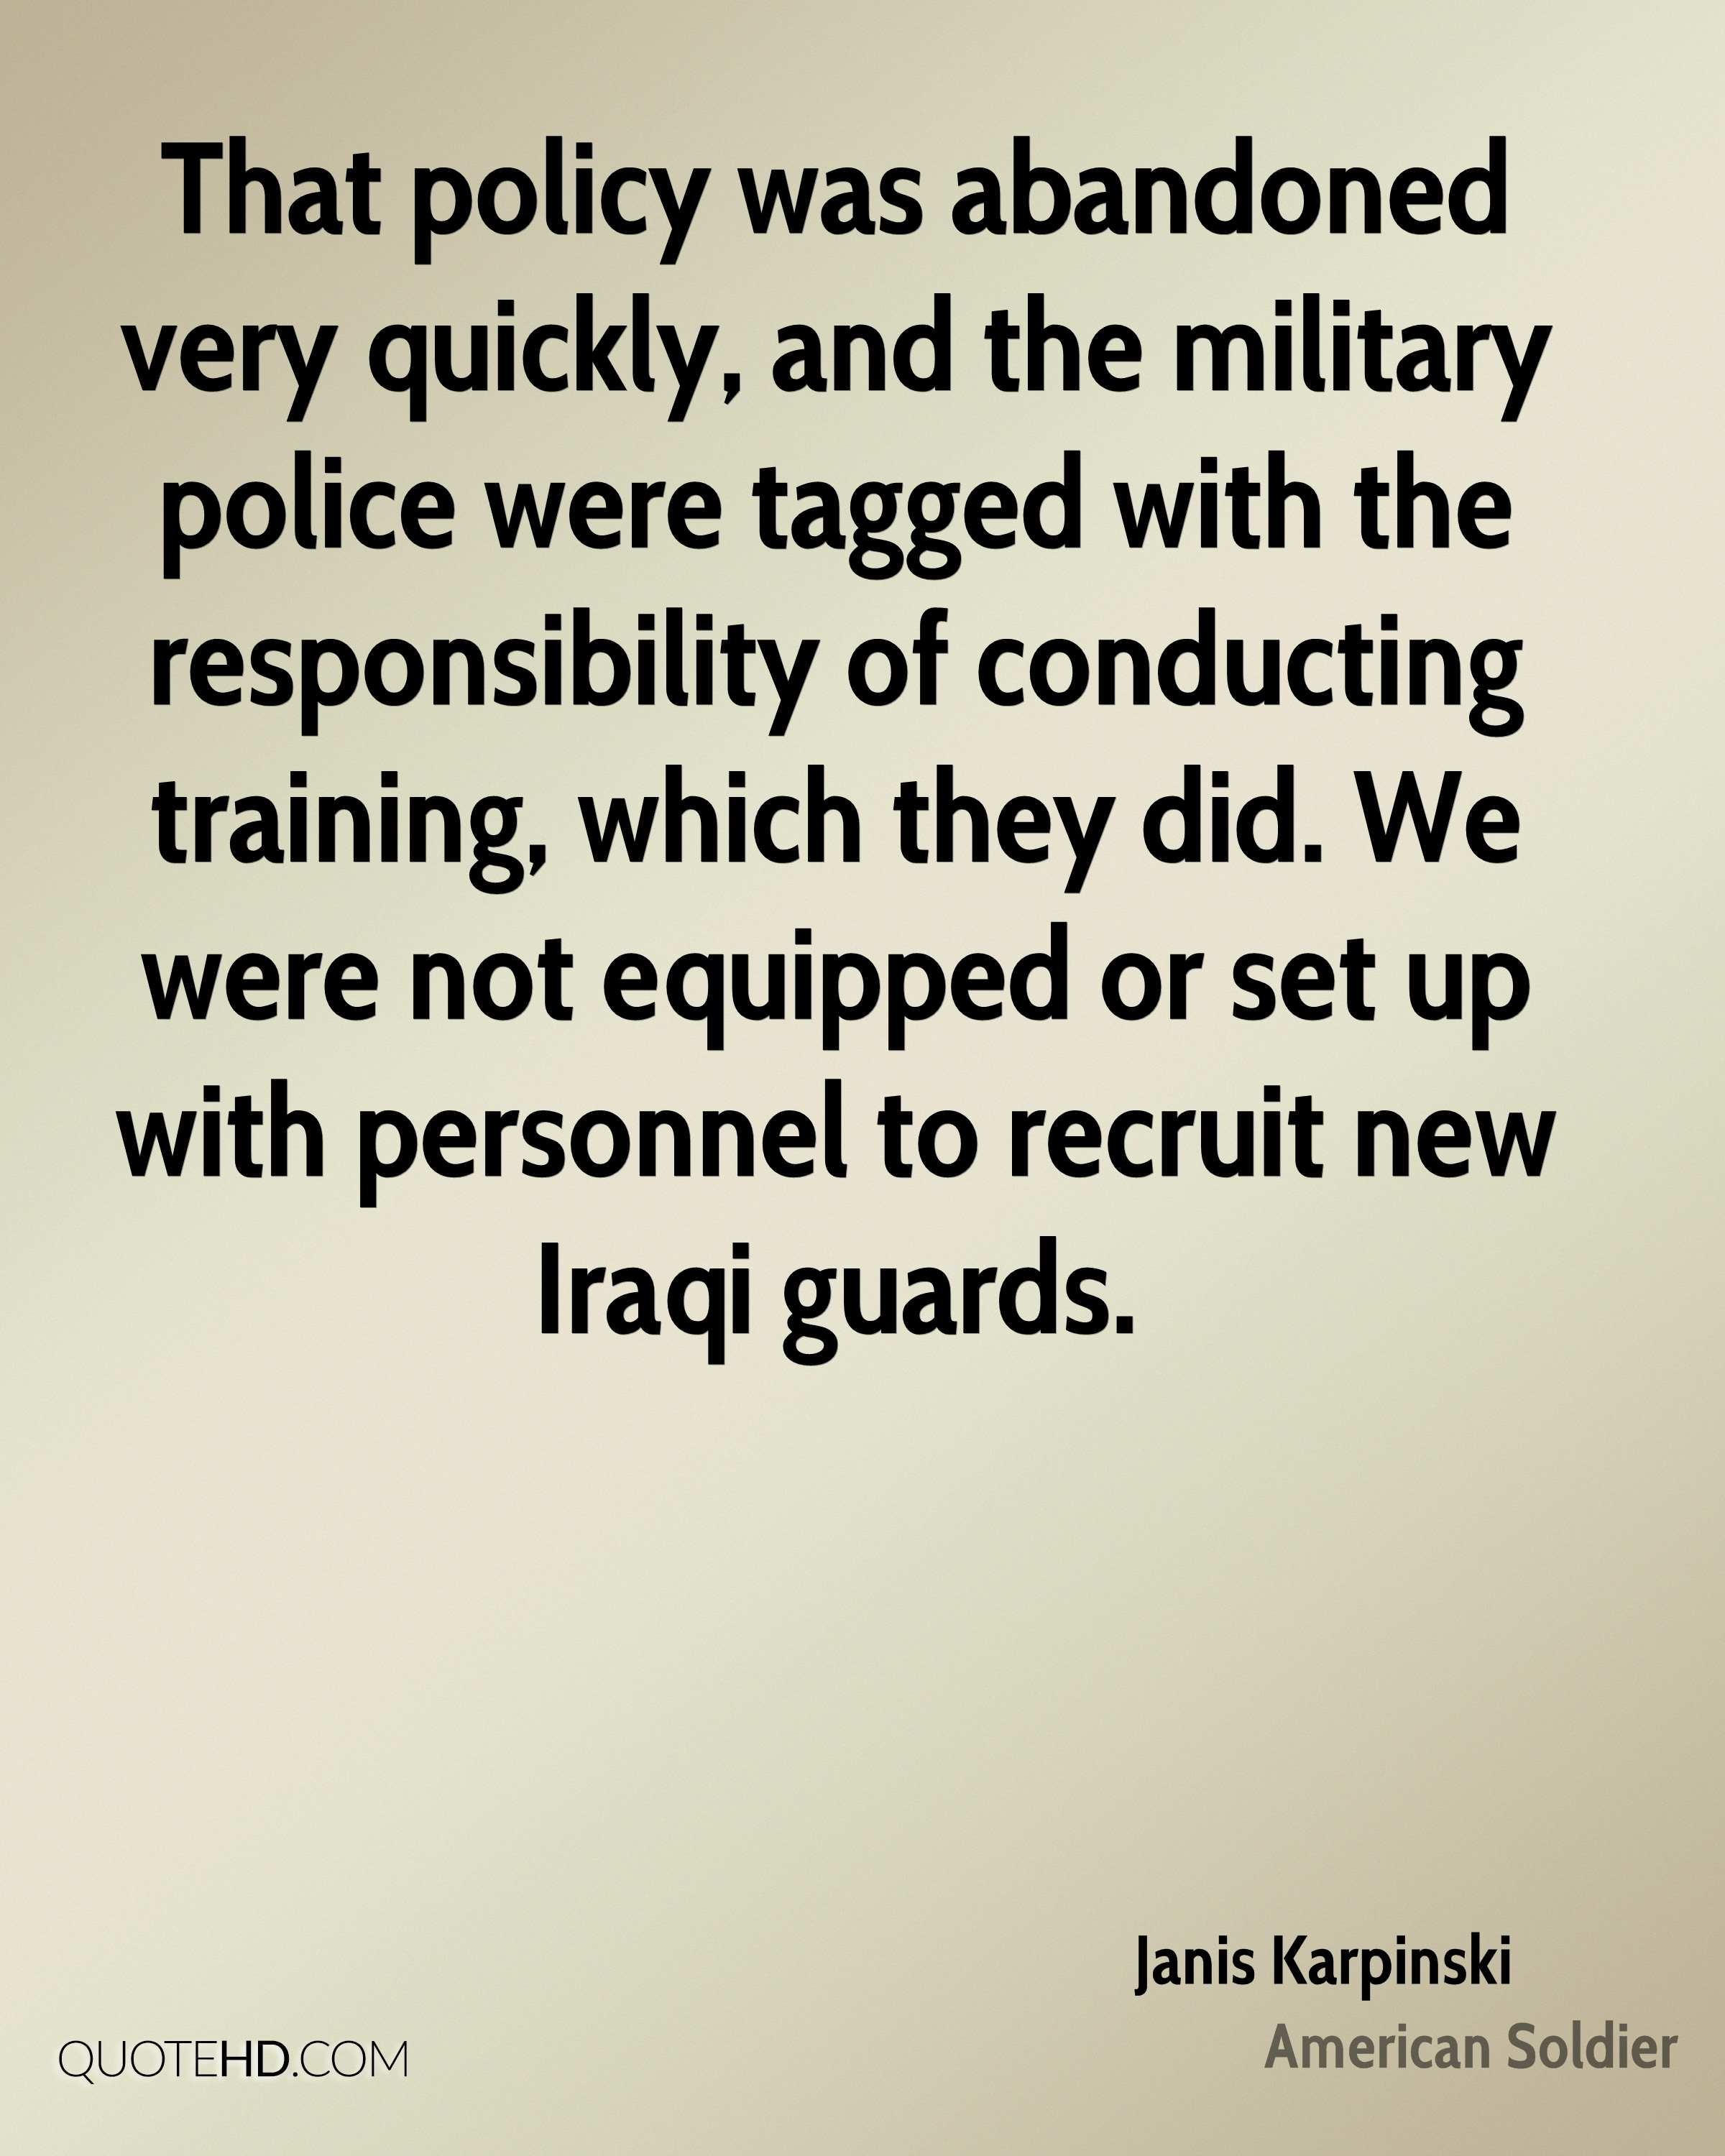 That policy was abandoned very quickly, and the military police were tagged with the responsibility of conducting training, which they did. We were not equipped or set up with personnel to recruit new Iraqi guards.